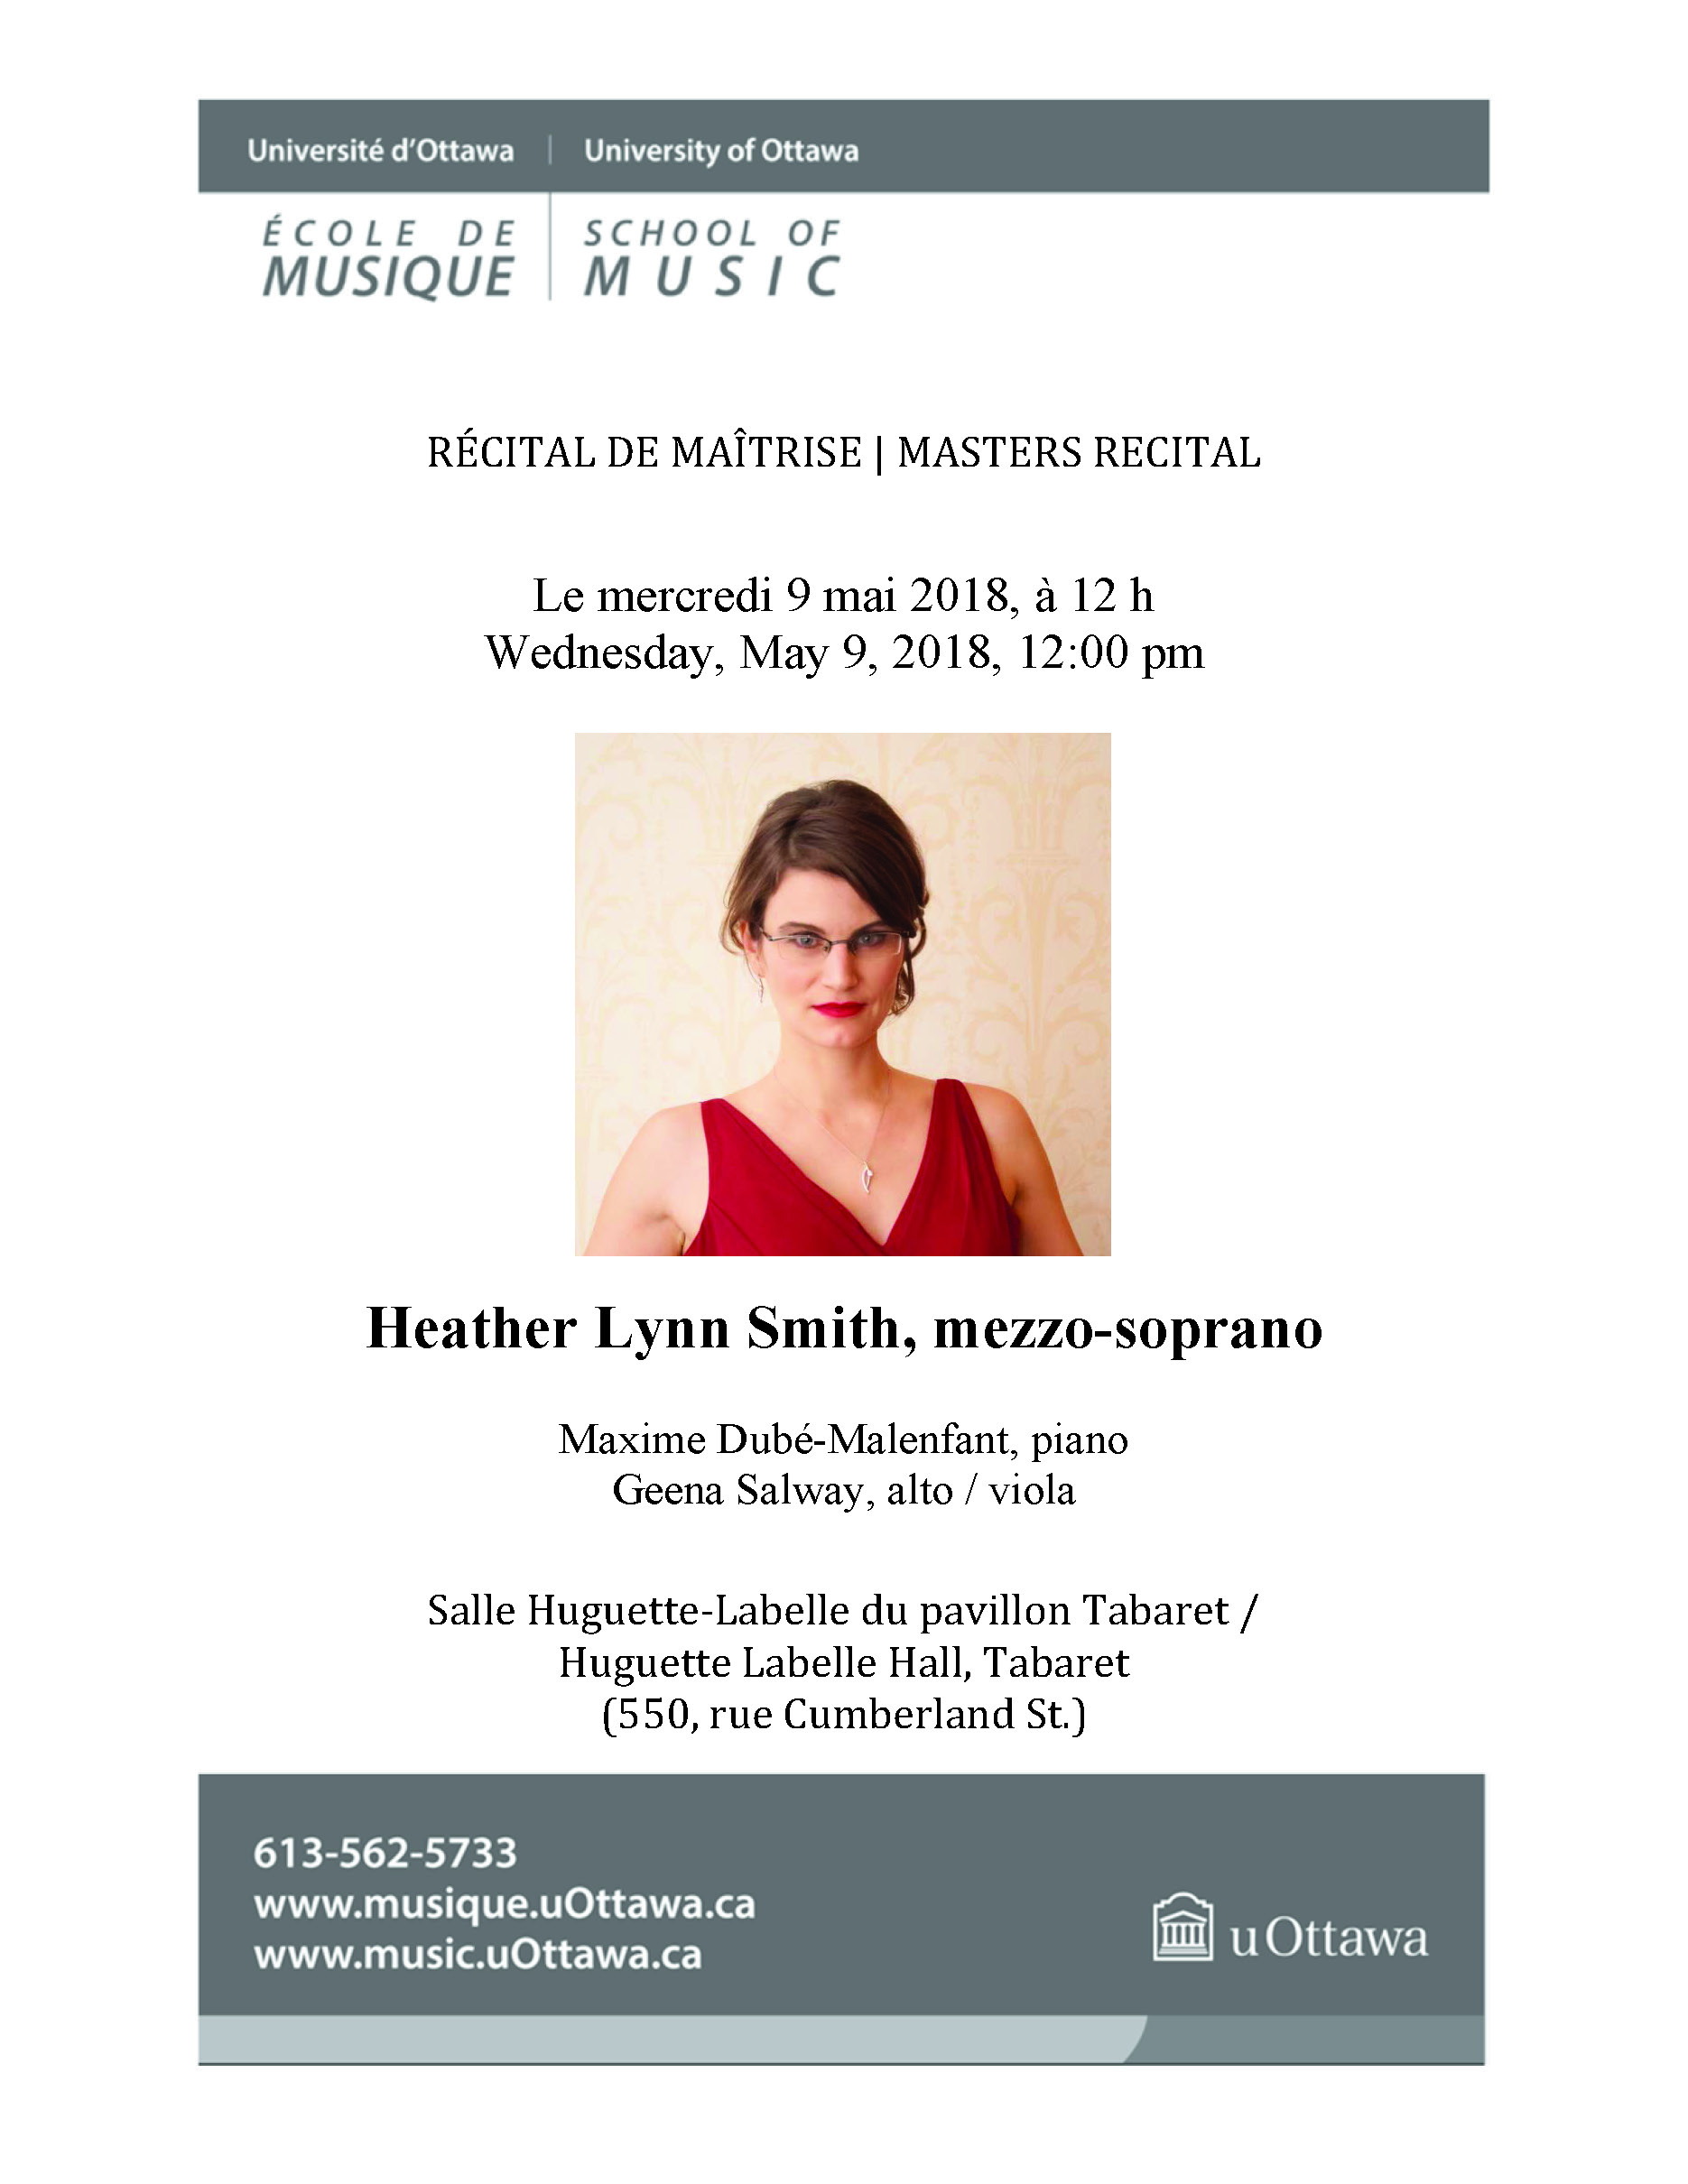 Page 1 of Heather Lynn Smith's recital program